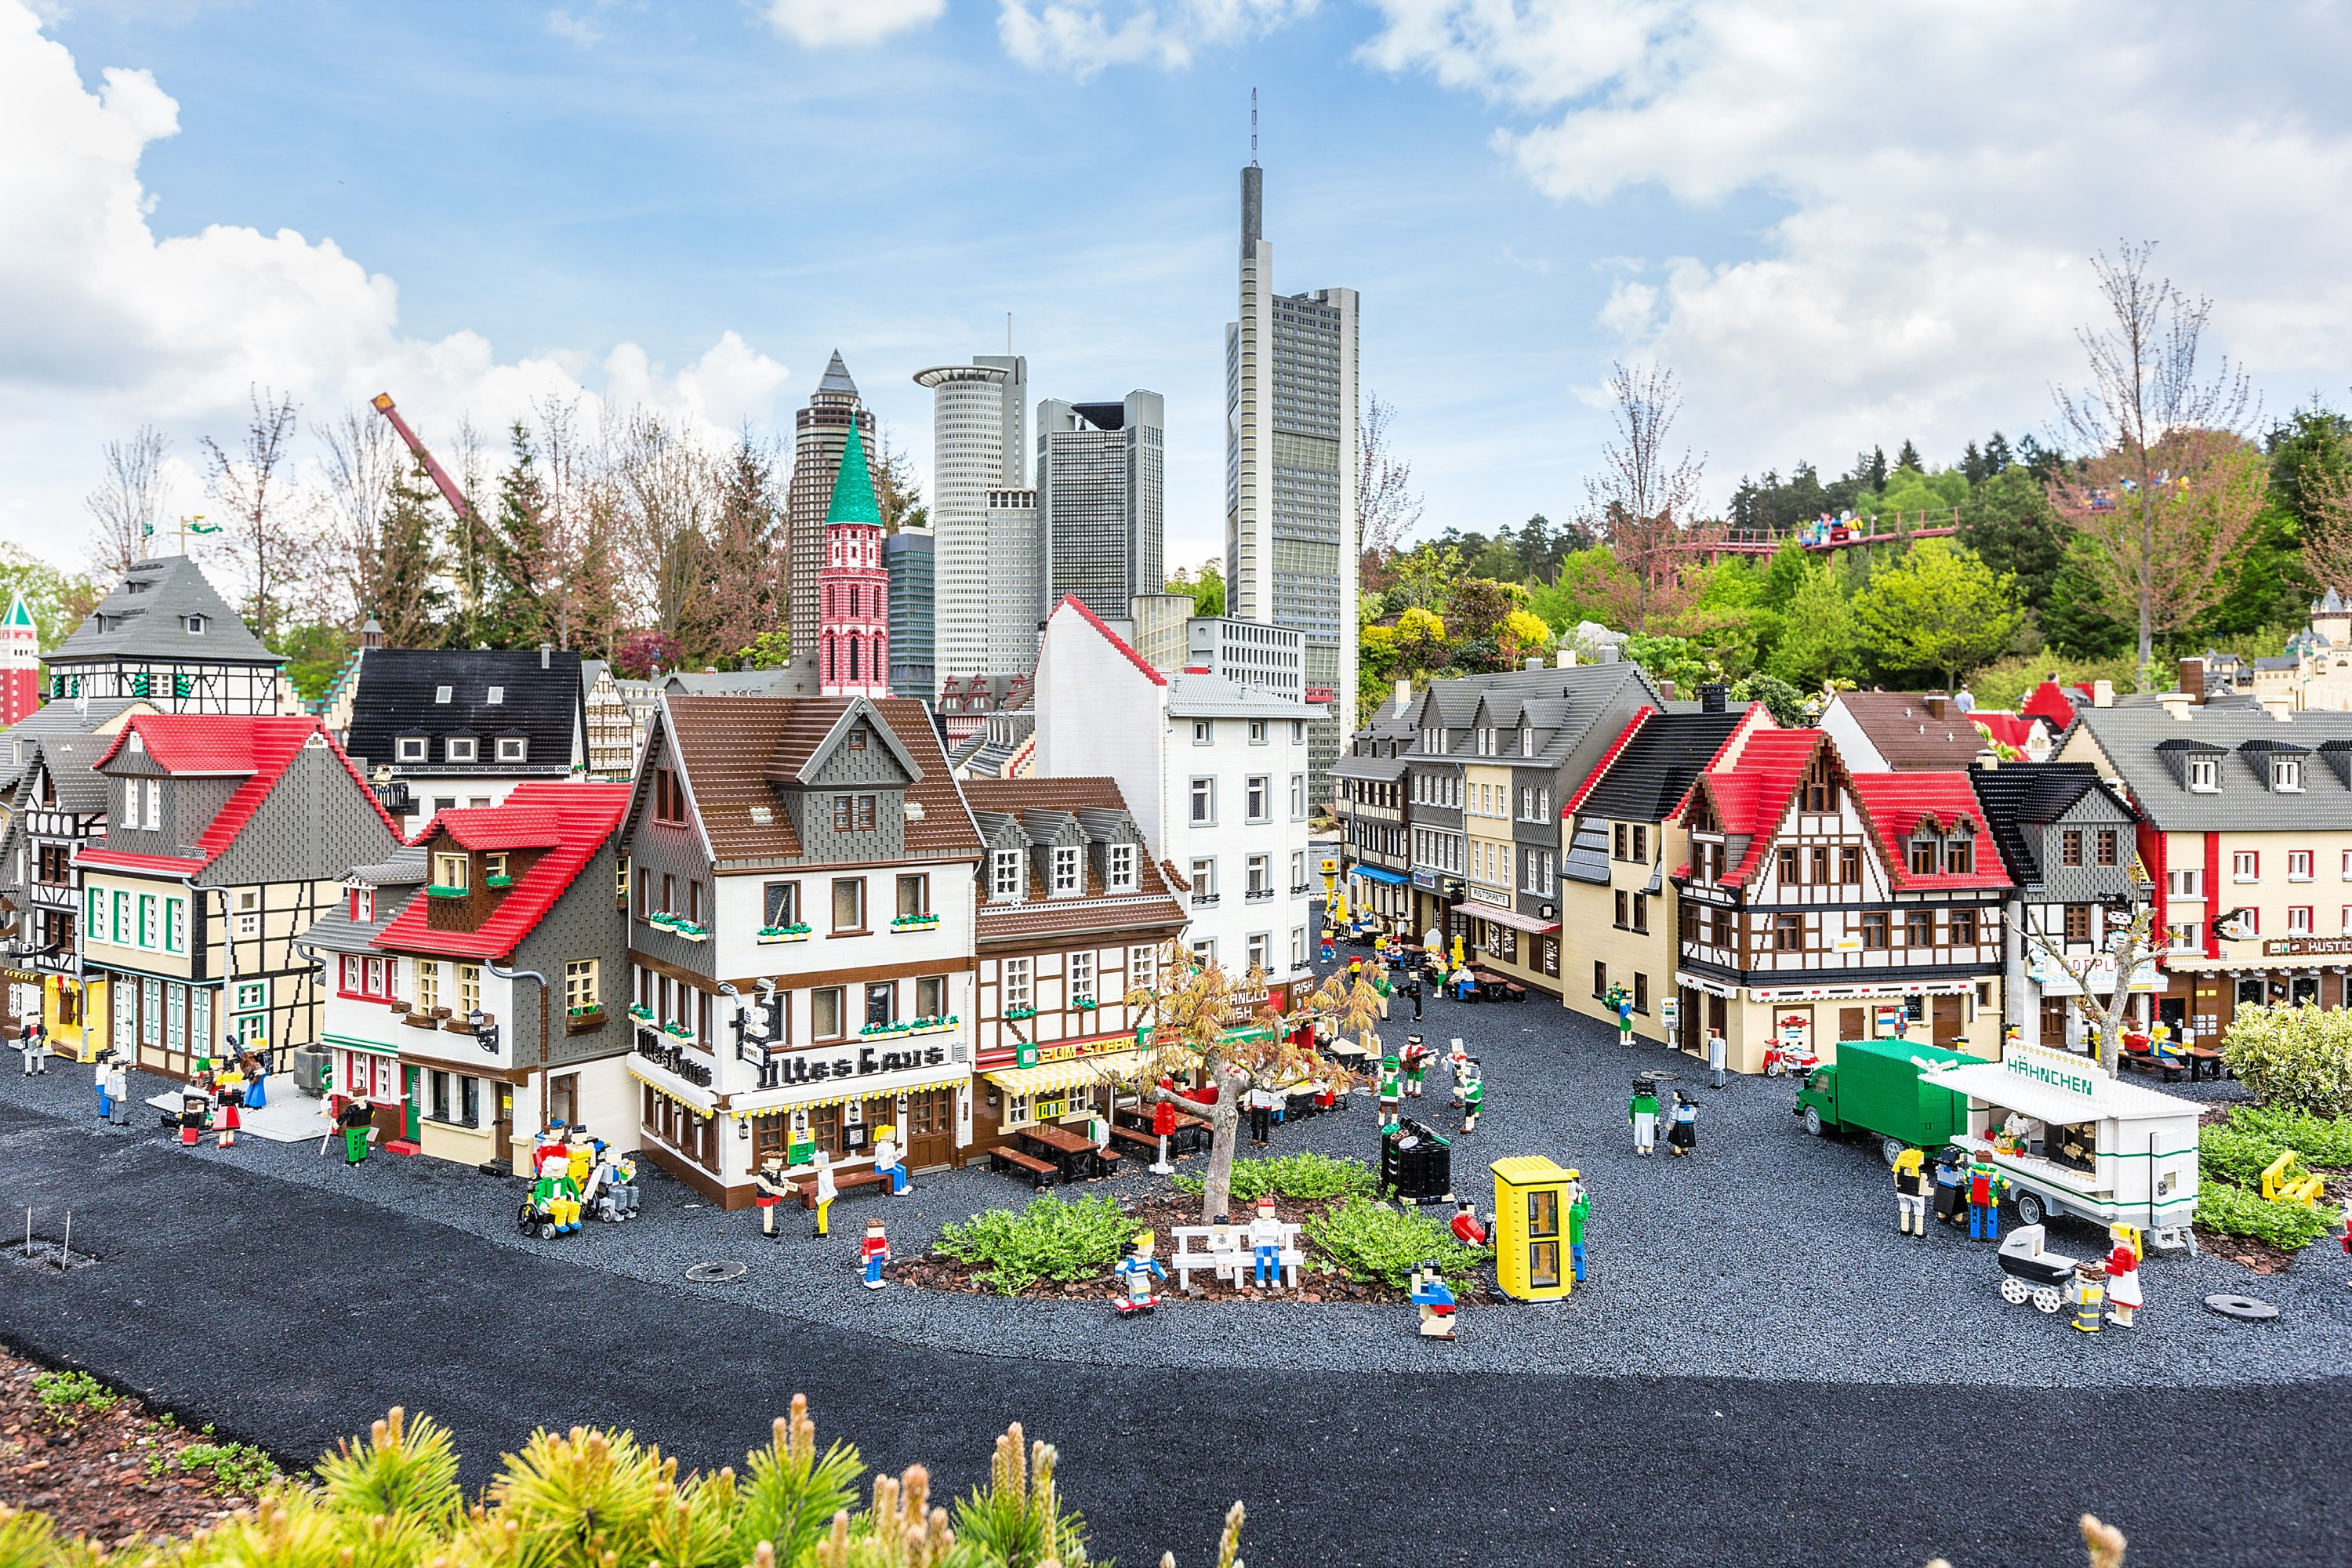 You can discover the magical world of Legos with Legoland virtual tour.